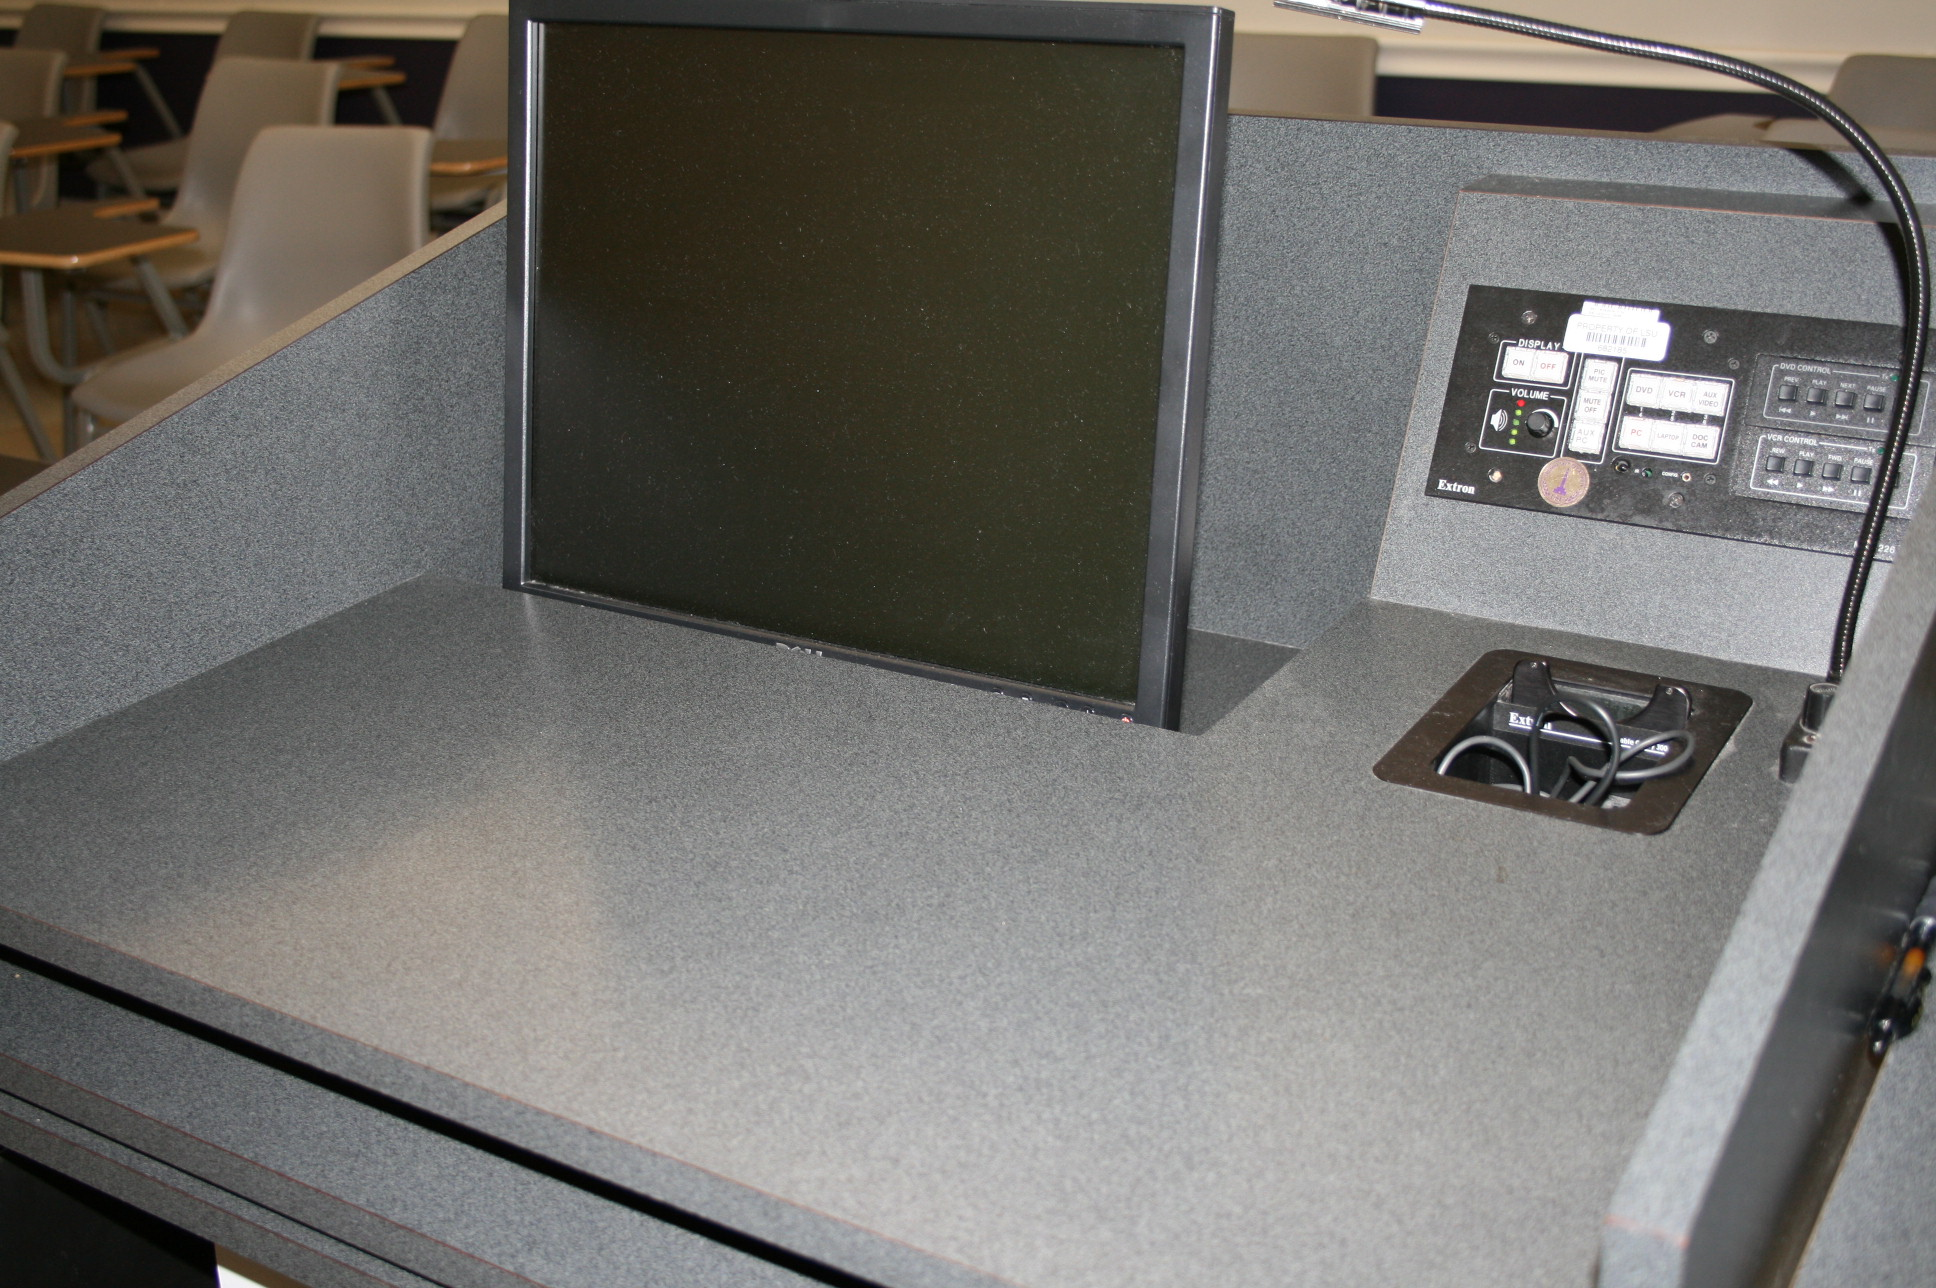 Multimedia desk available in Prescott 118 at the front